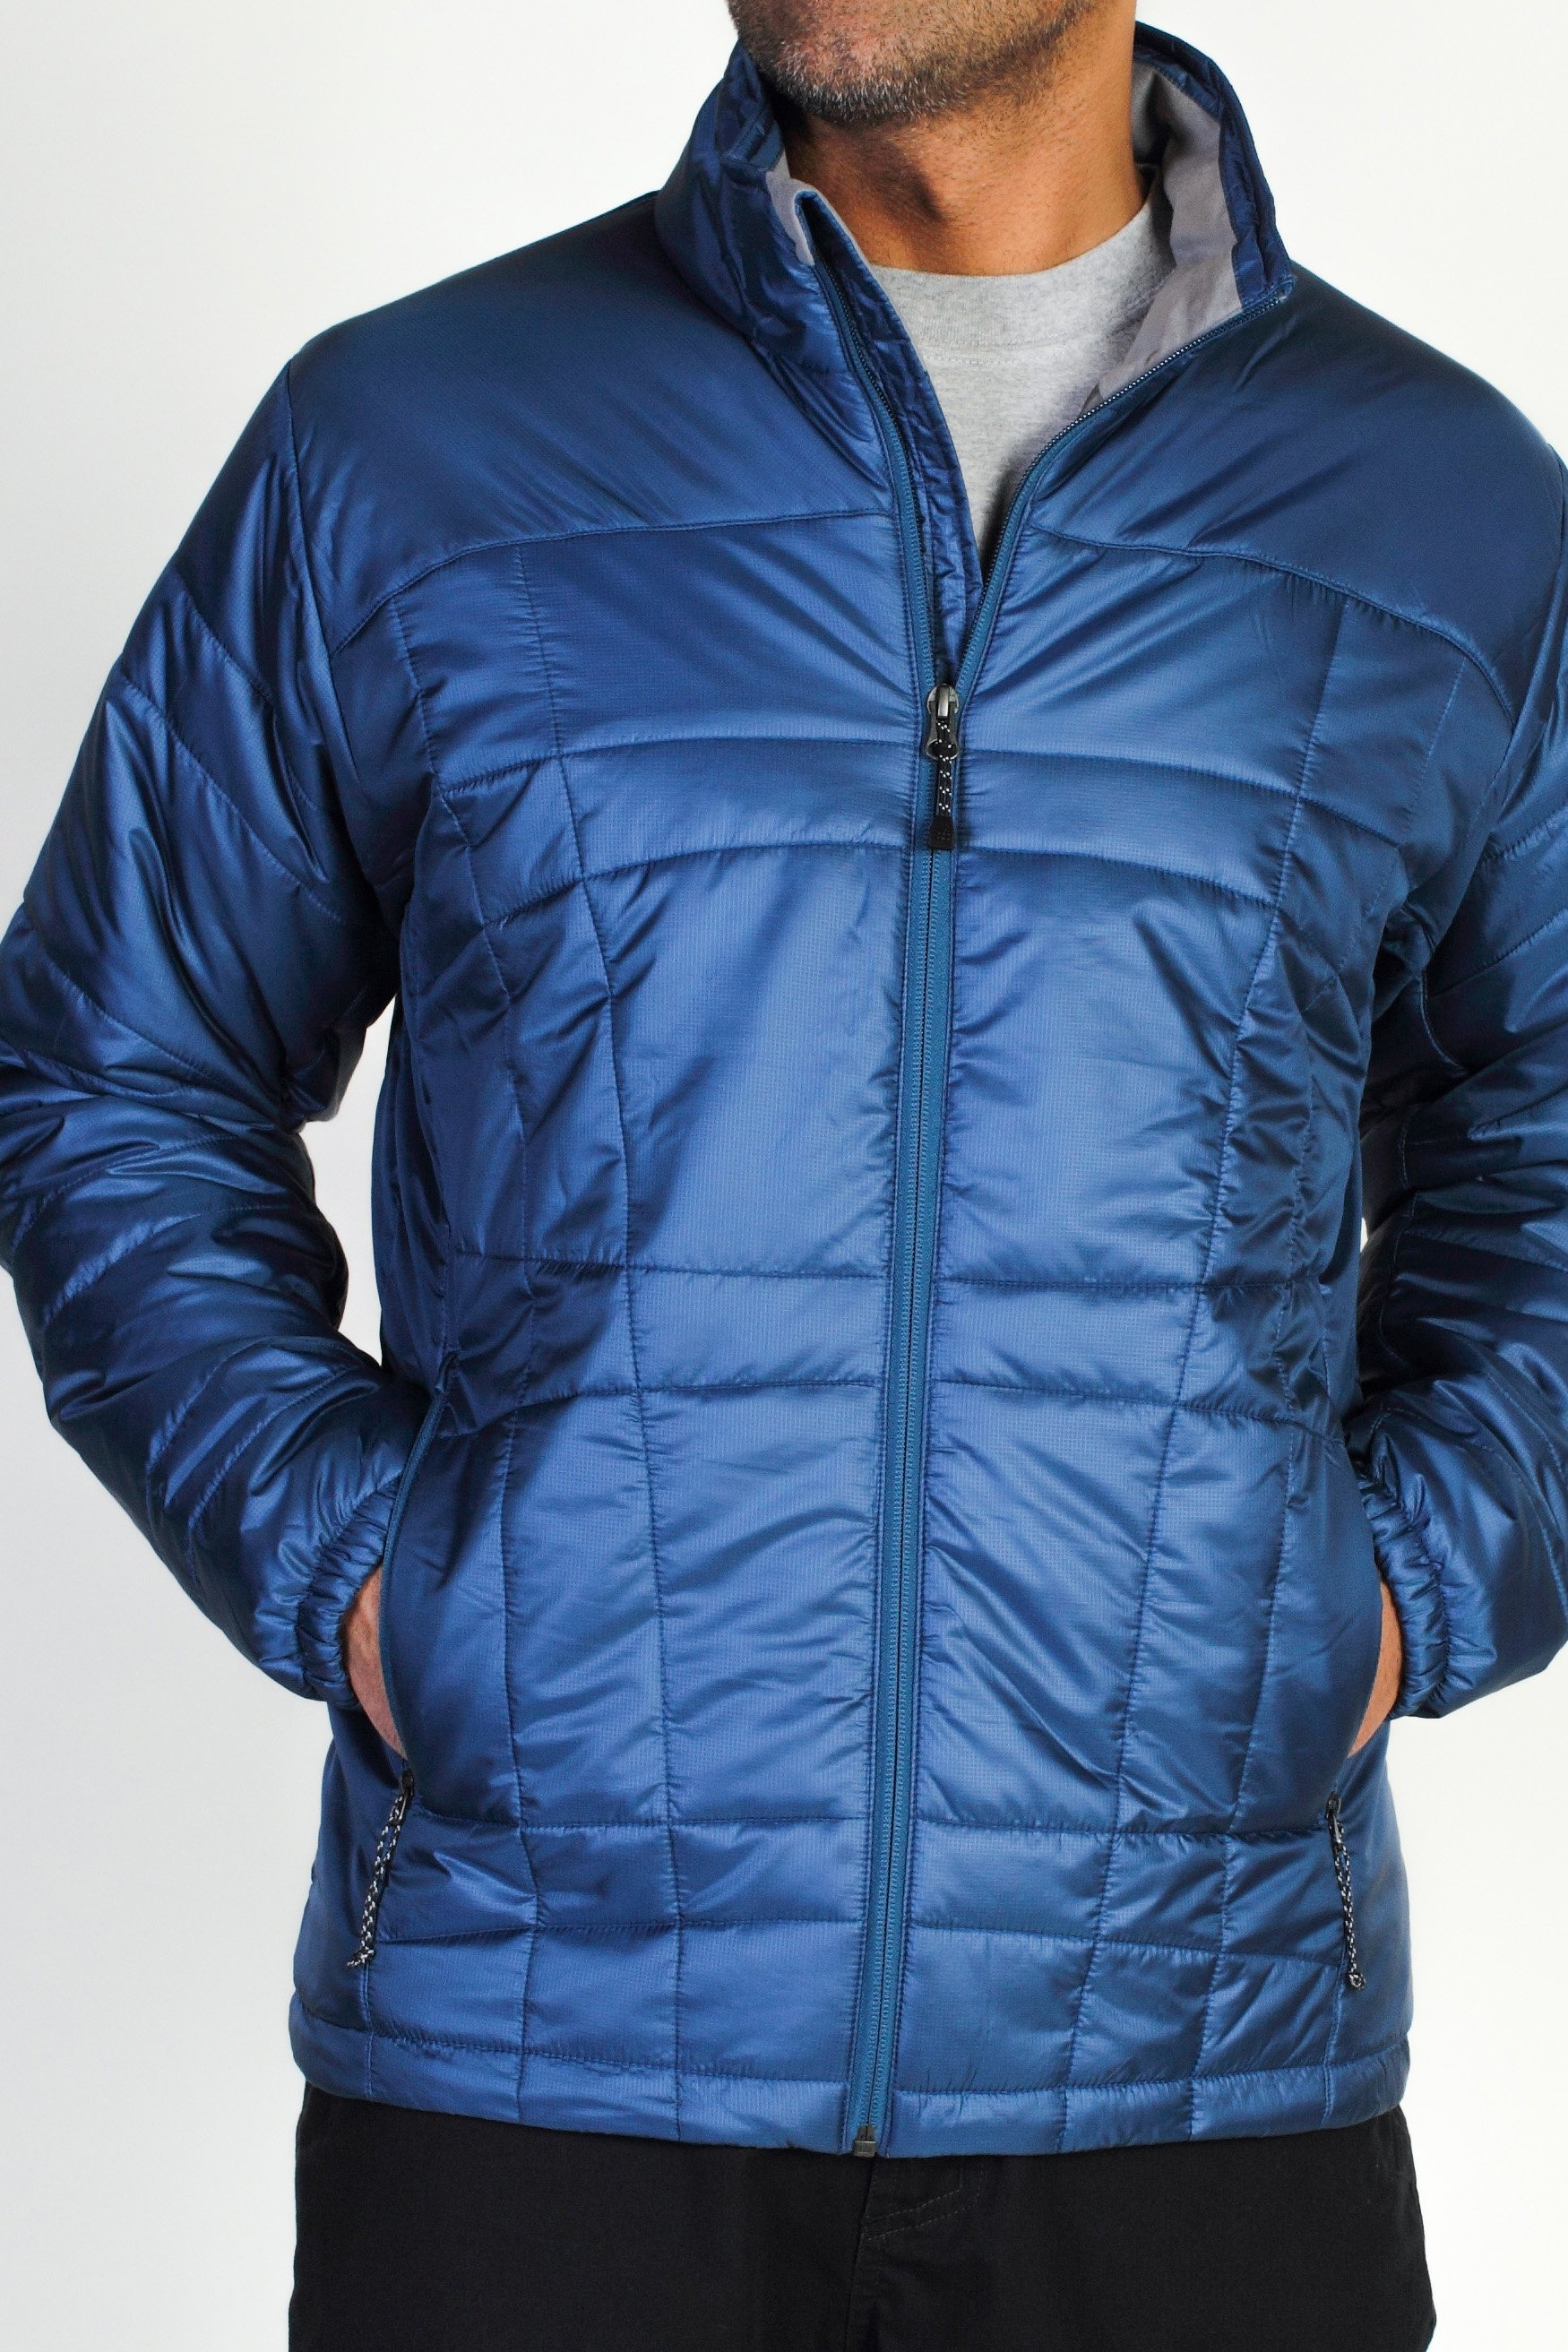 Men's Storm Logic™ Jacket